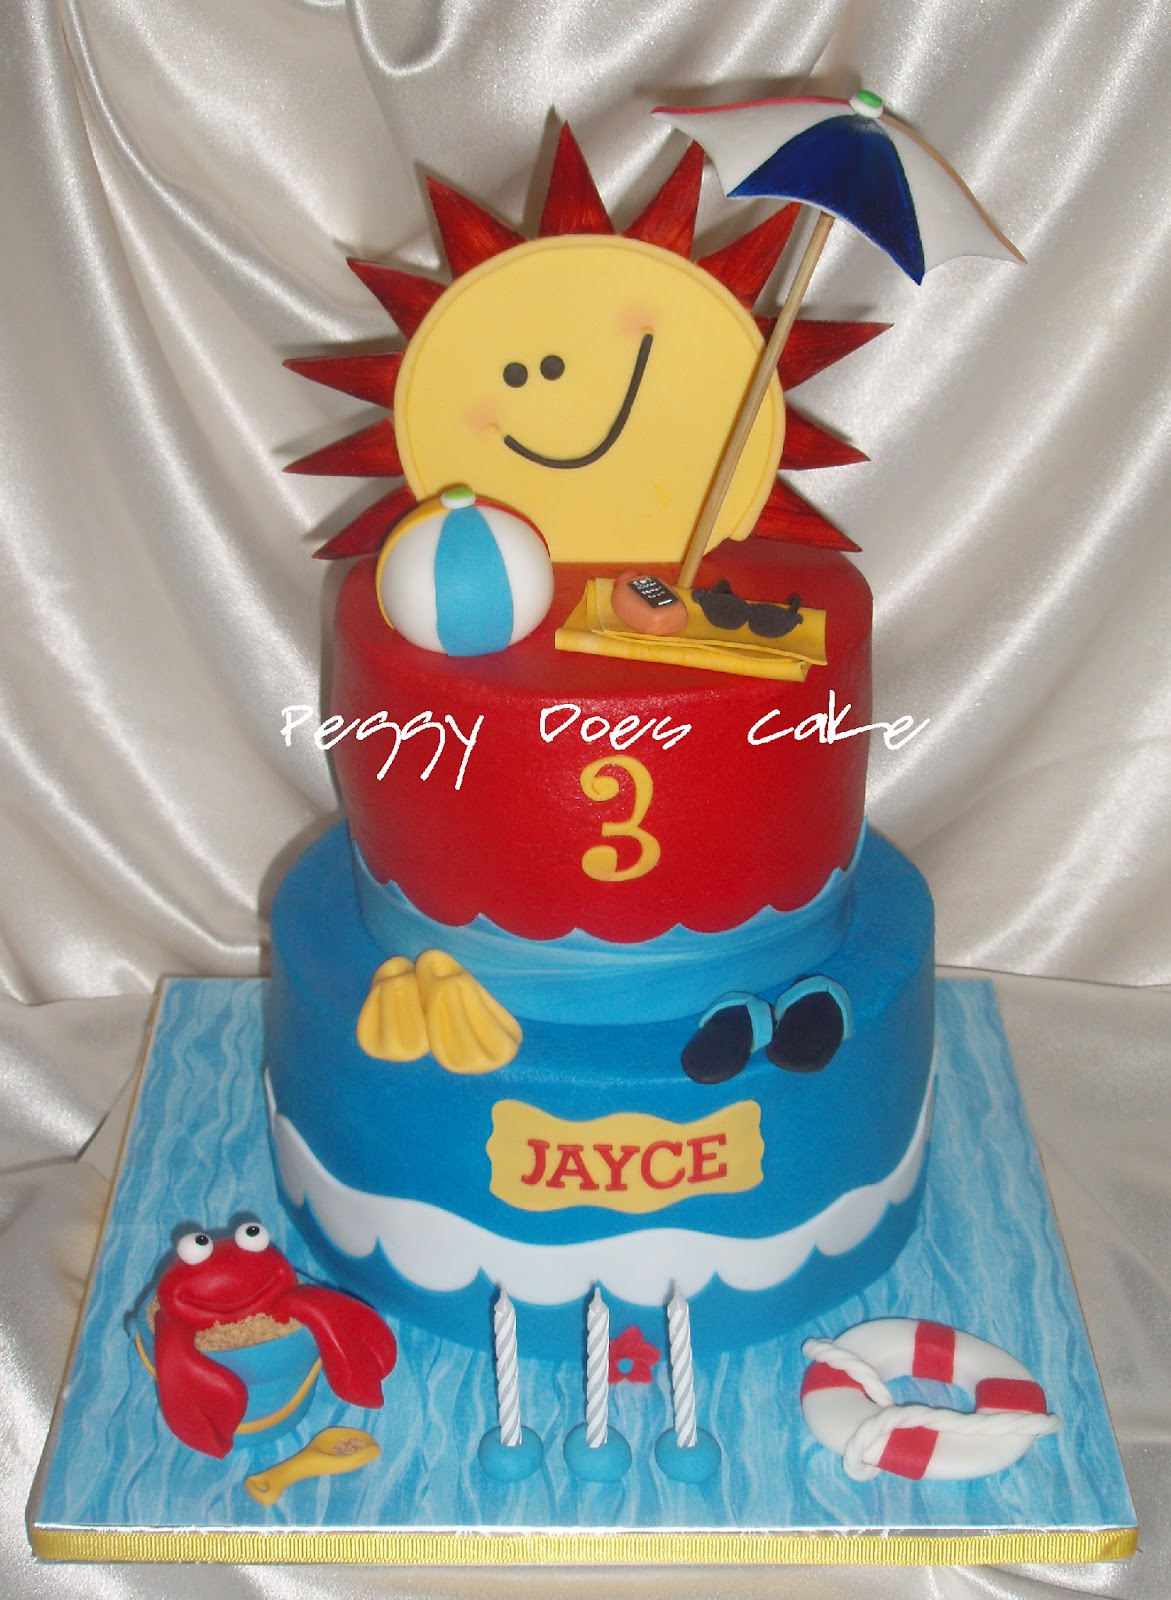 Peggy does cake cake update pool party cake for jayce click instead of fondant just for the kid friendliness of the butter cream accents were gum paste and fondant and all was edible except the embrella stem sciox Choice Image